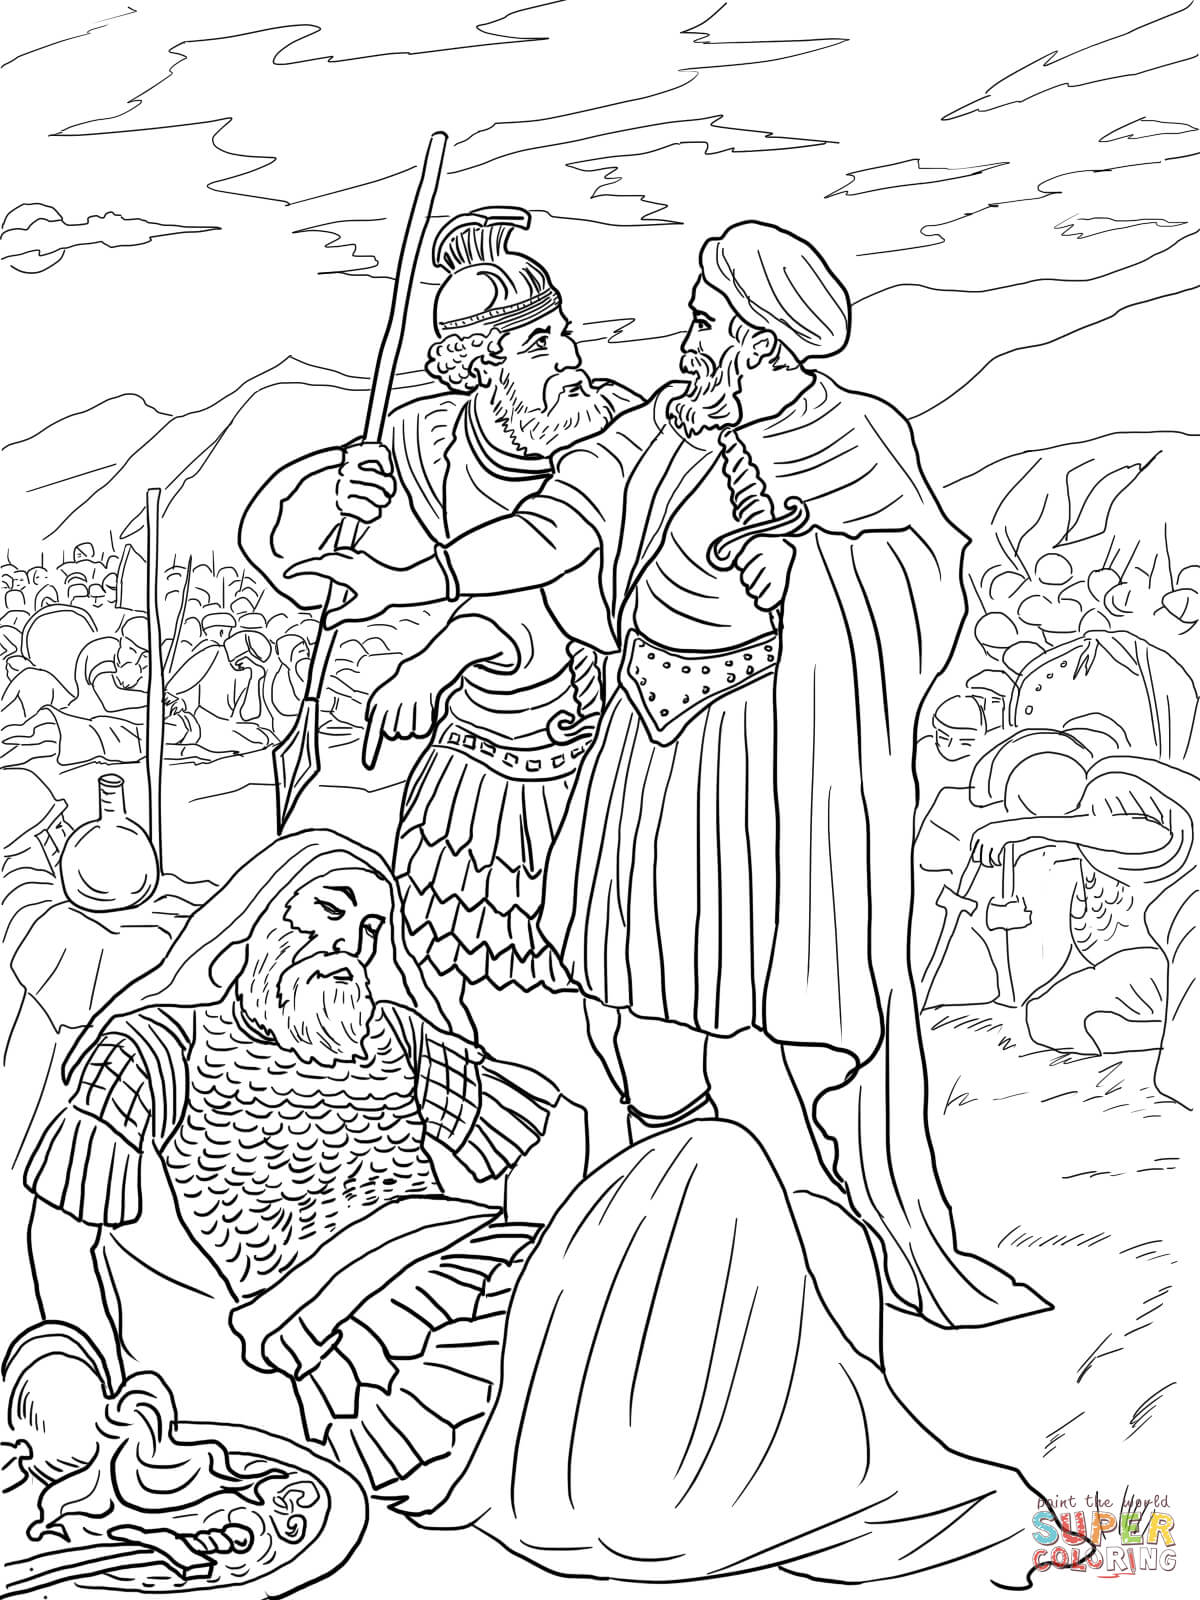 King Saul Coloring Page : coloring, David, Spares, Coloring, Printable, Pages